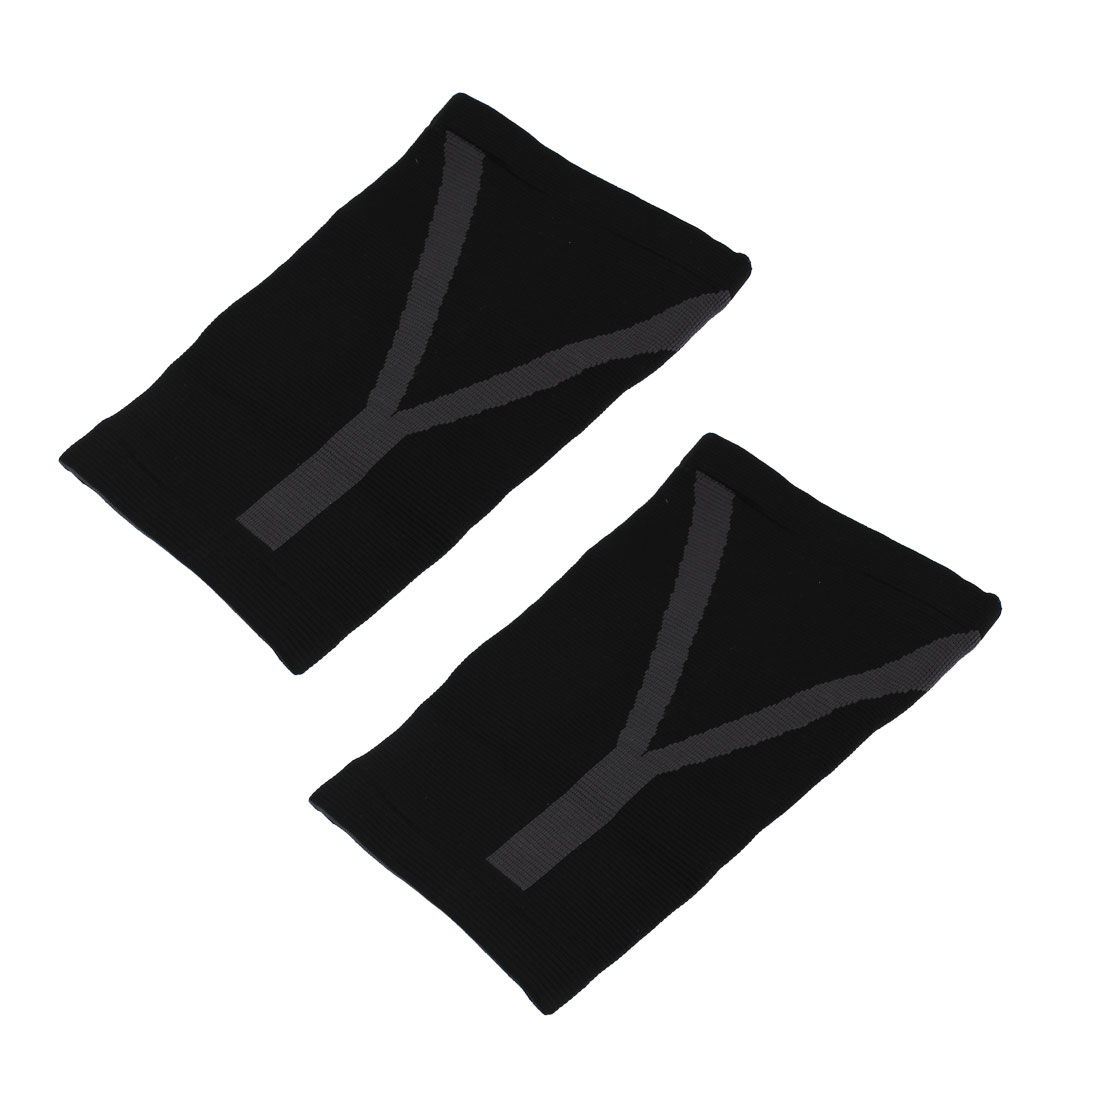 Outdoor Sports Gym Black Elastic Knee Support Patella Protector Brace Pad 2pcs